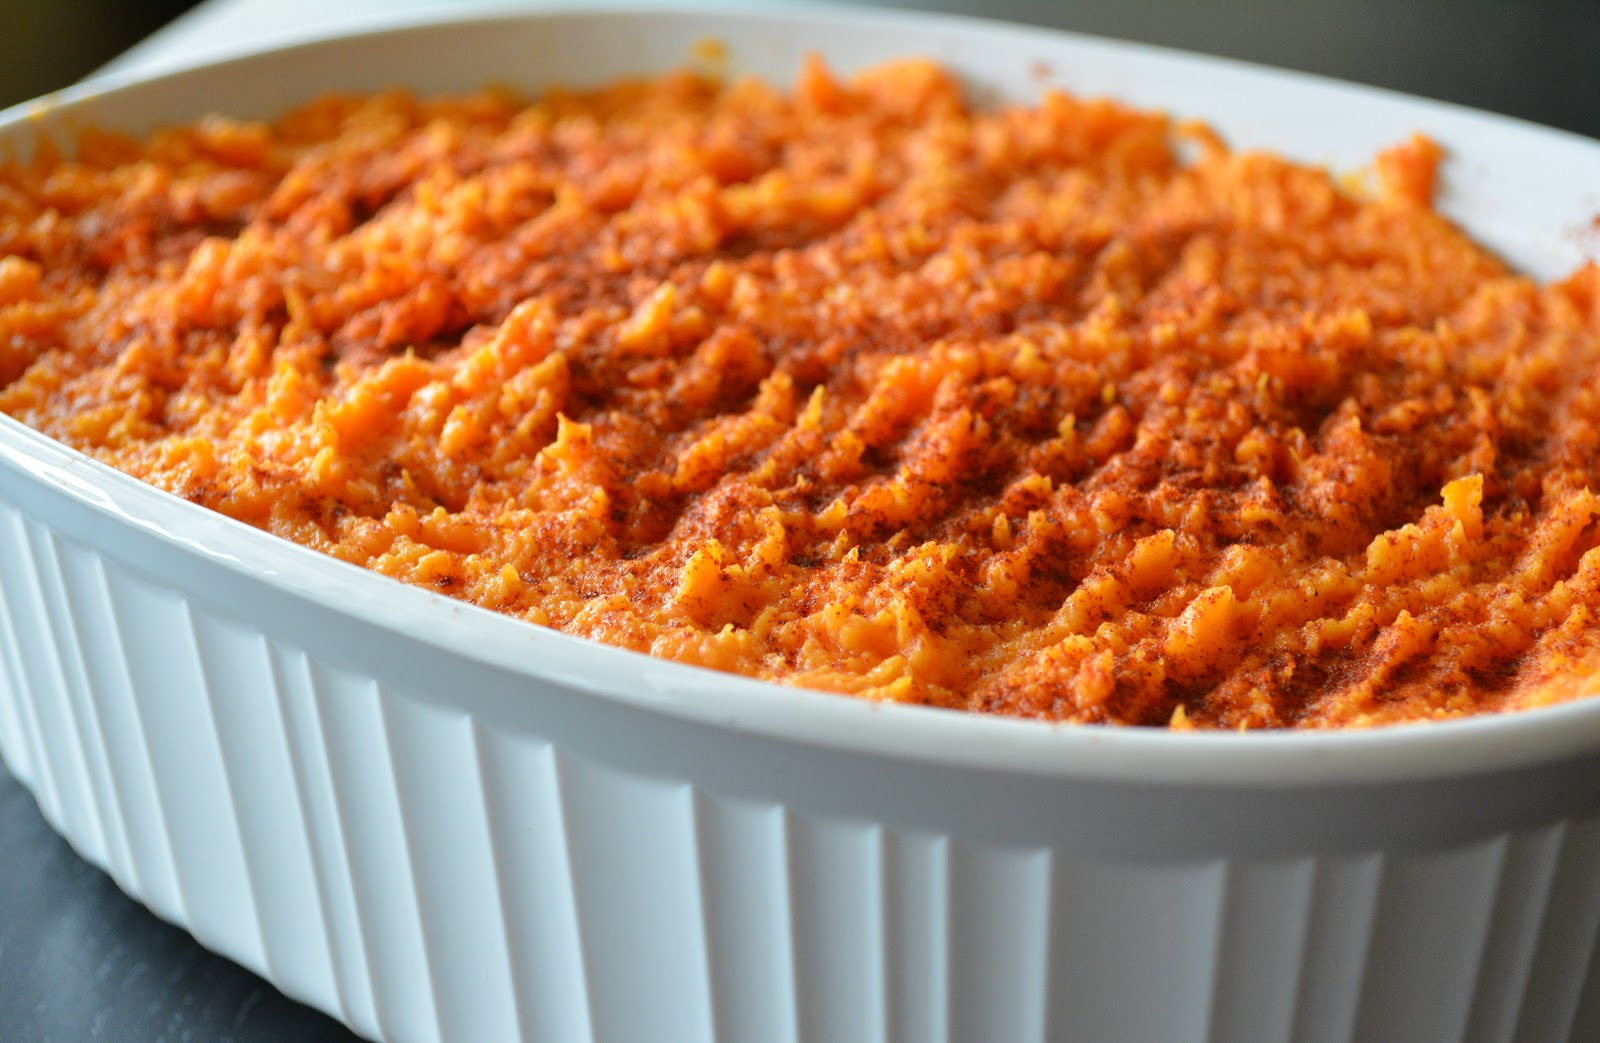 Ladybug's Landing: Sweet Potato Turkey Shepherd's Pie